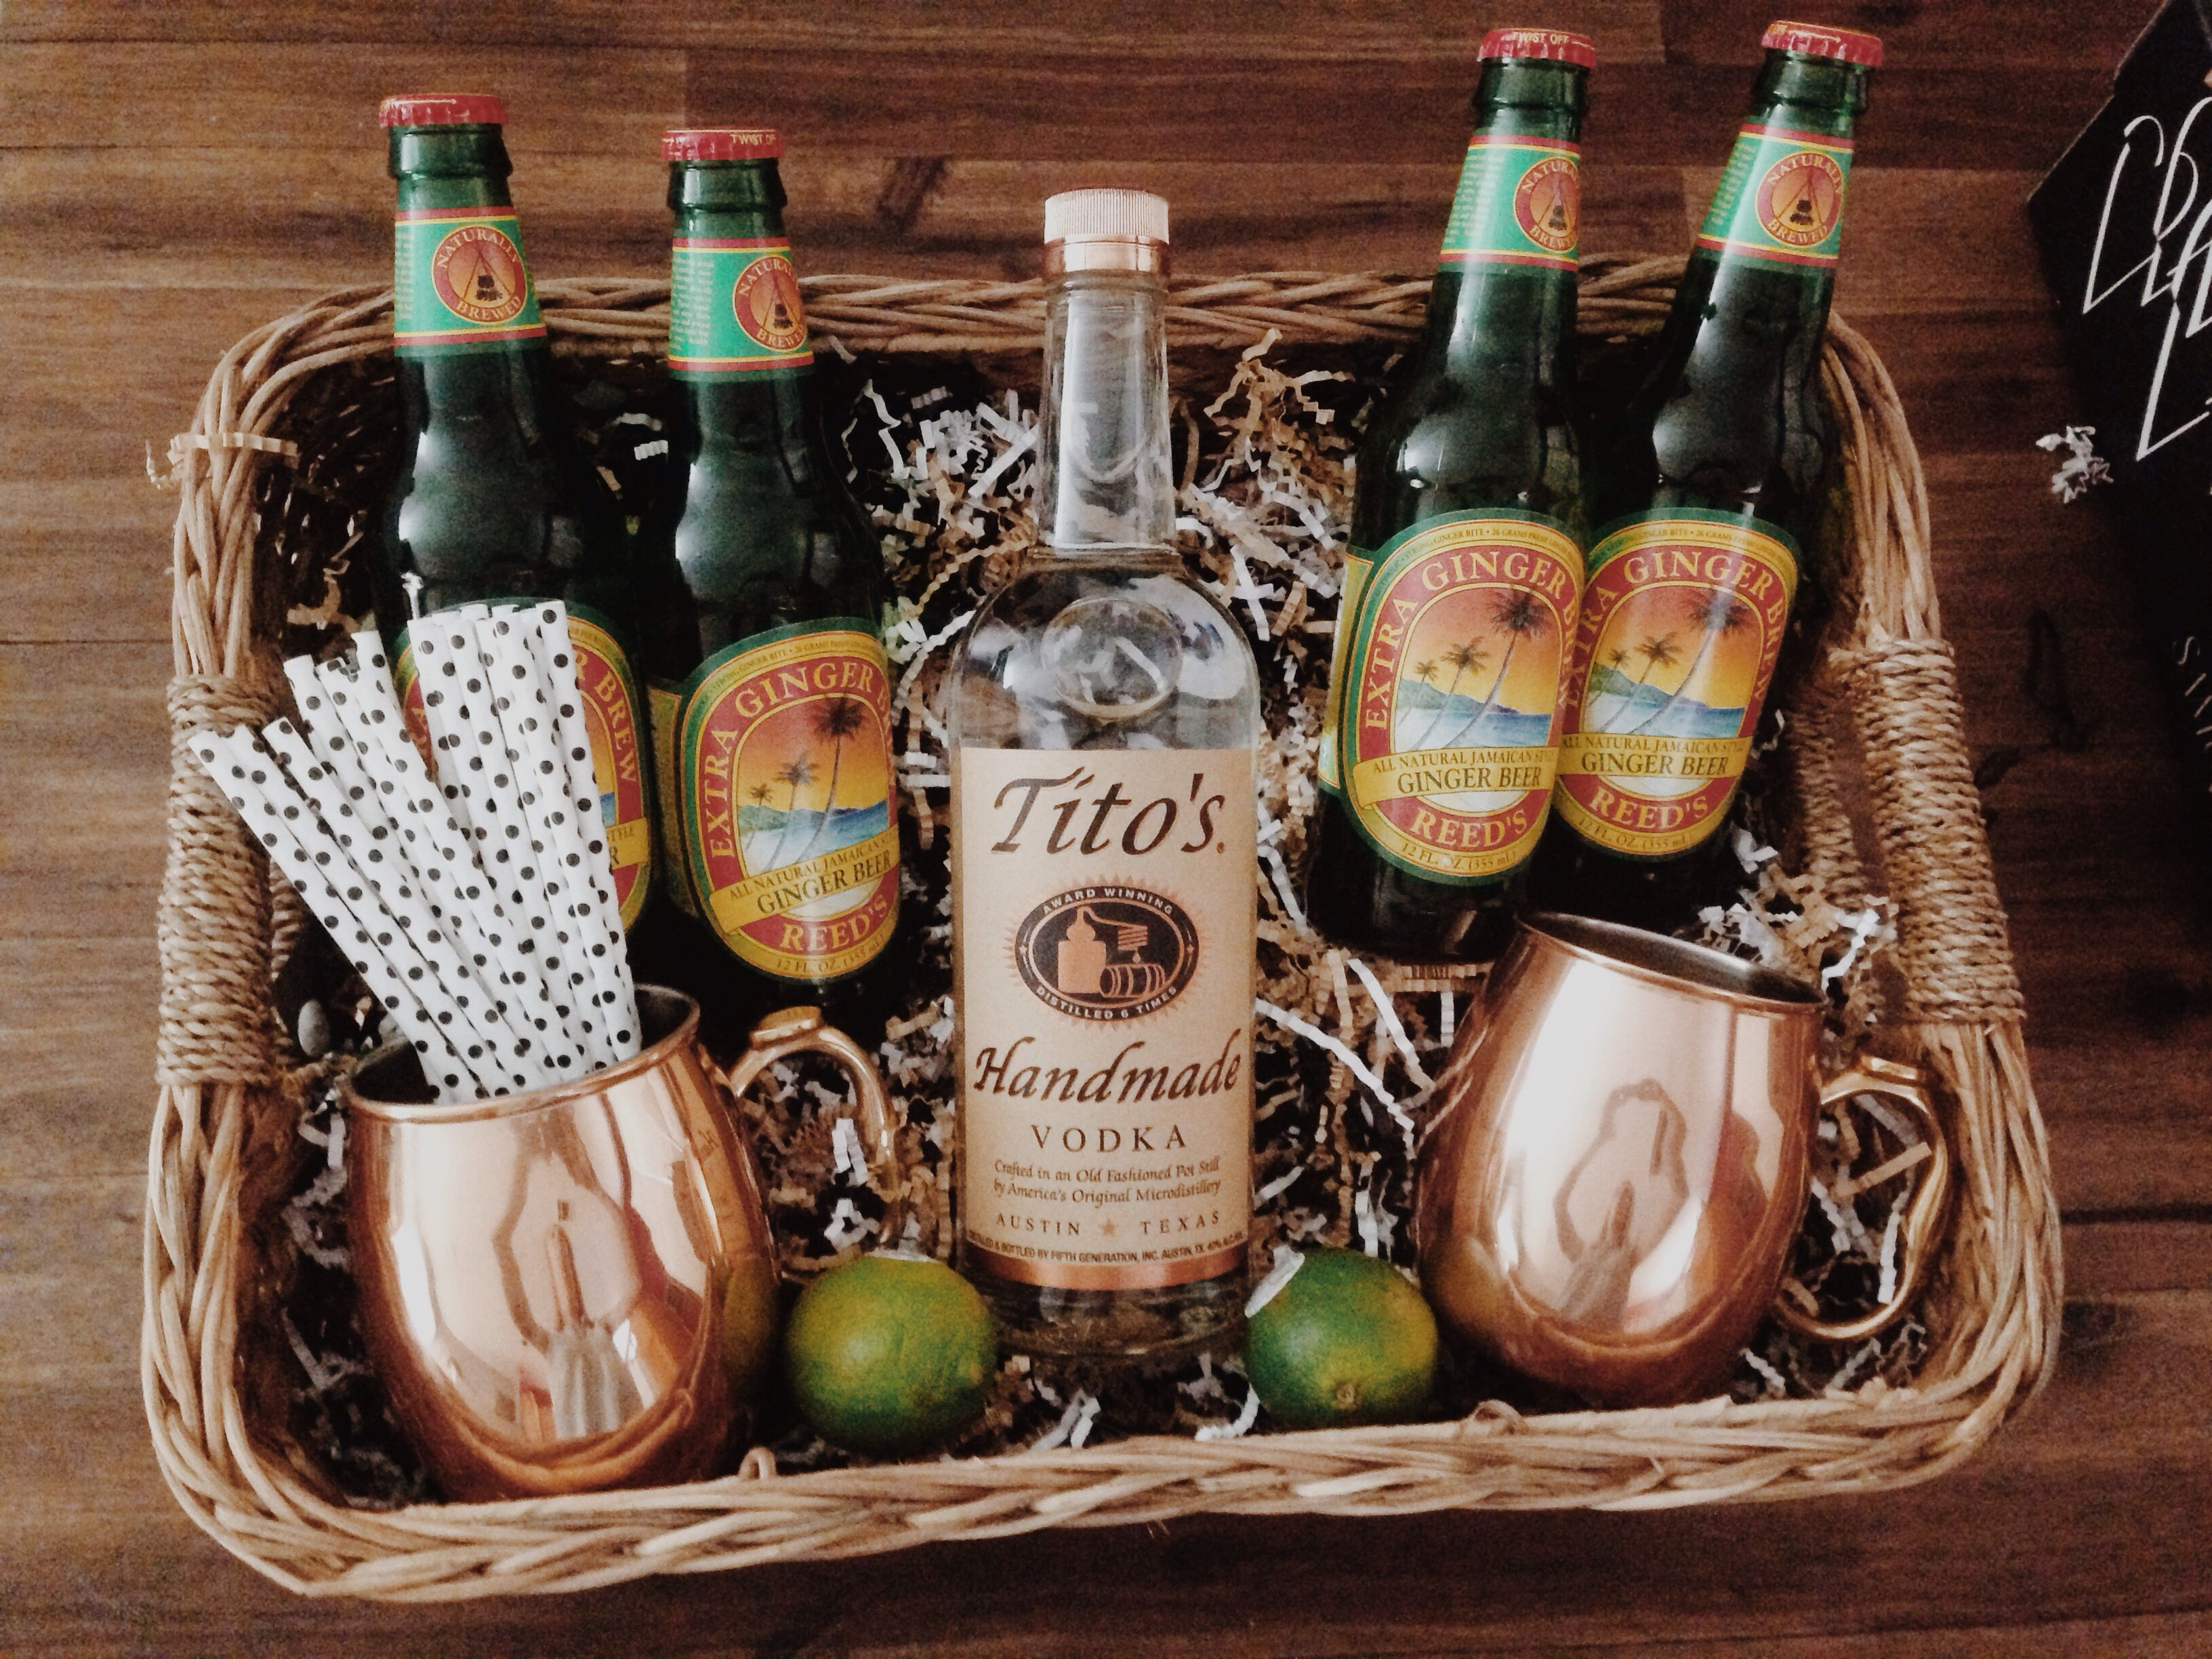 Wedding Wine Gift Basket: Moscow Mule Basket I Made For A Bridal Shower. Copper Cups